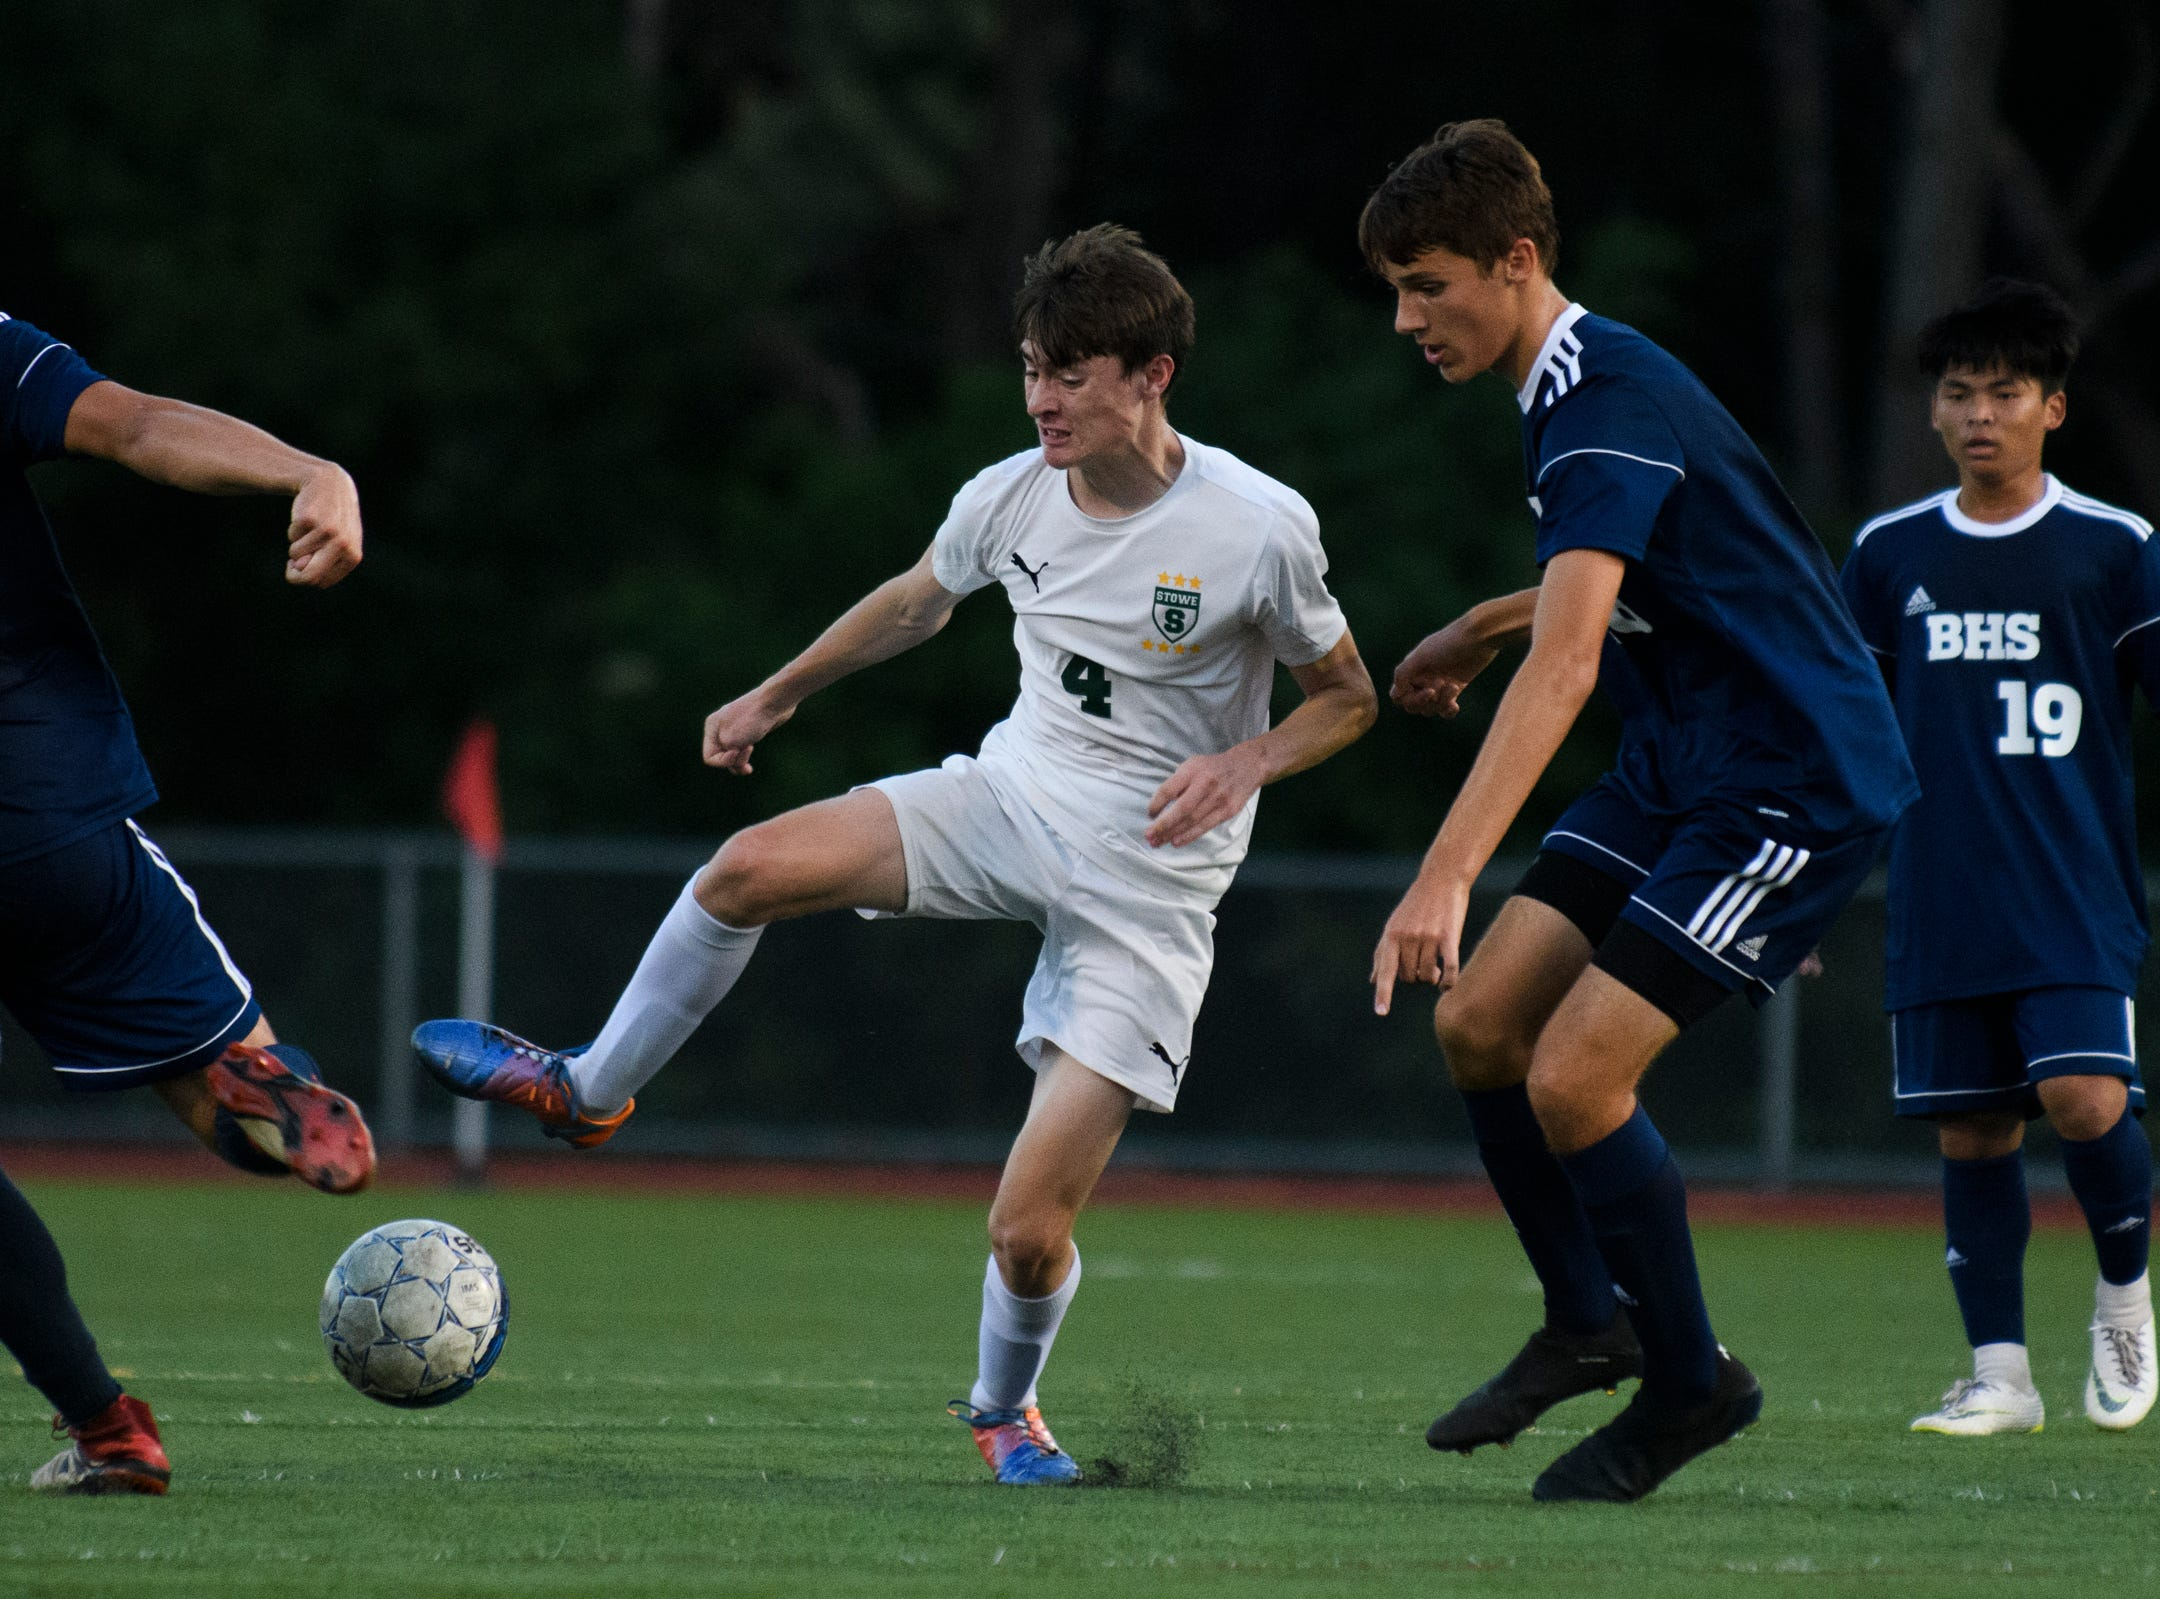 Stowe's Alex Reichelt (4) plays the ball during the boys soccer game between Stowe and Burlington at Buck Hard field on Wednesday night September 5, 2018 in Burlington.